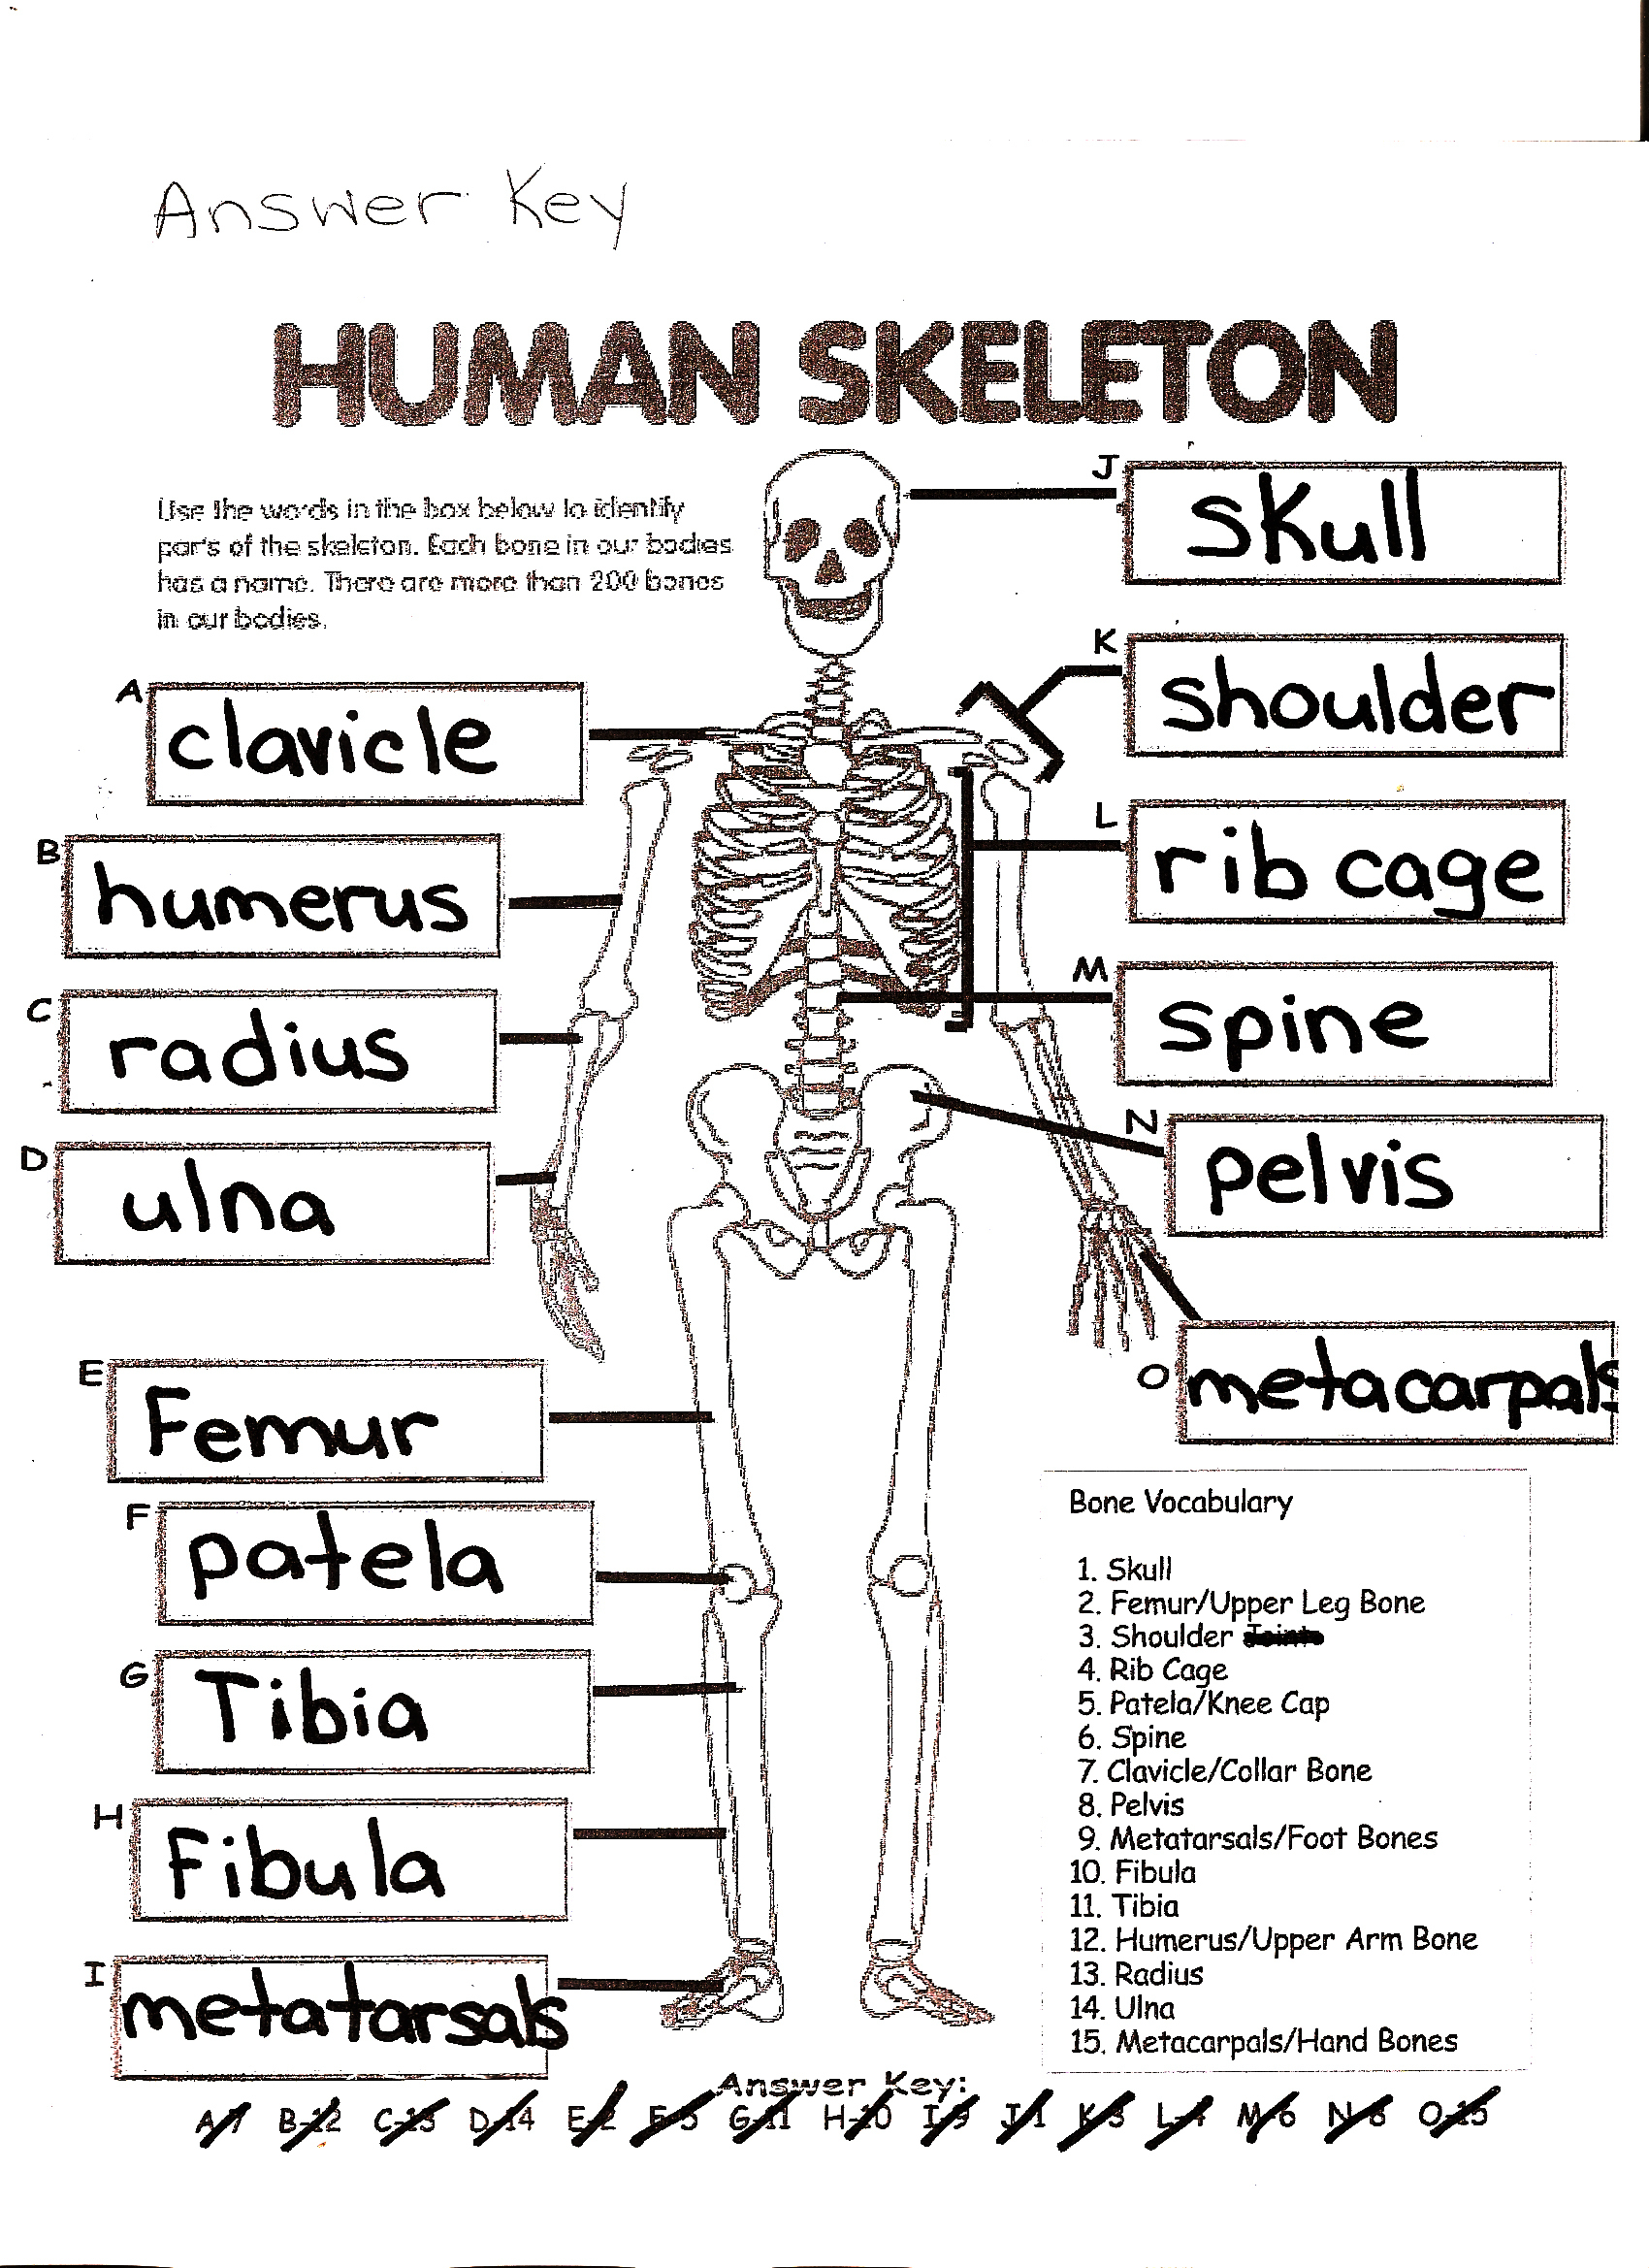 Skeletal System Crossword Puzzle Answers   Healthy Hesongbai - Skeletal System Crossword Puzzle Printables